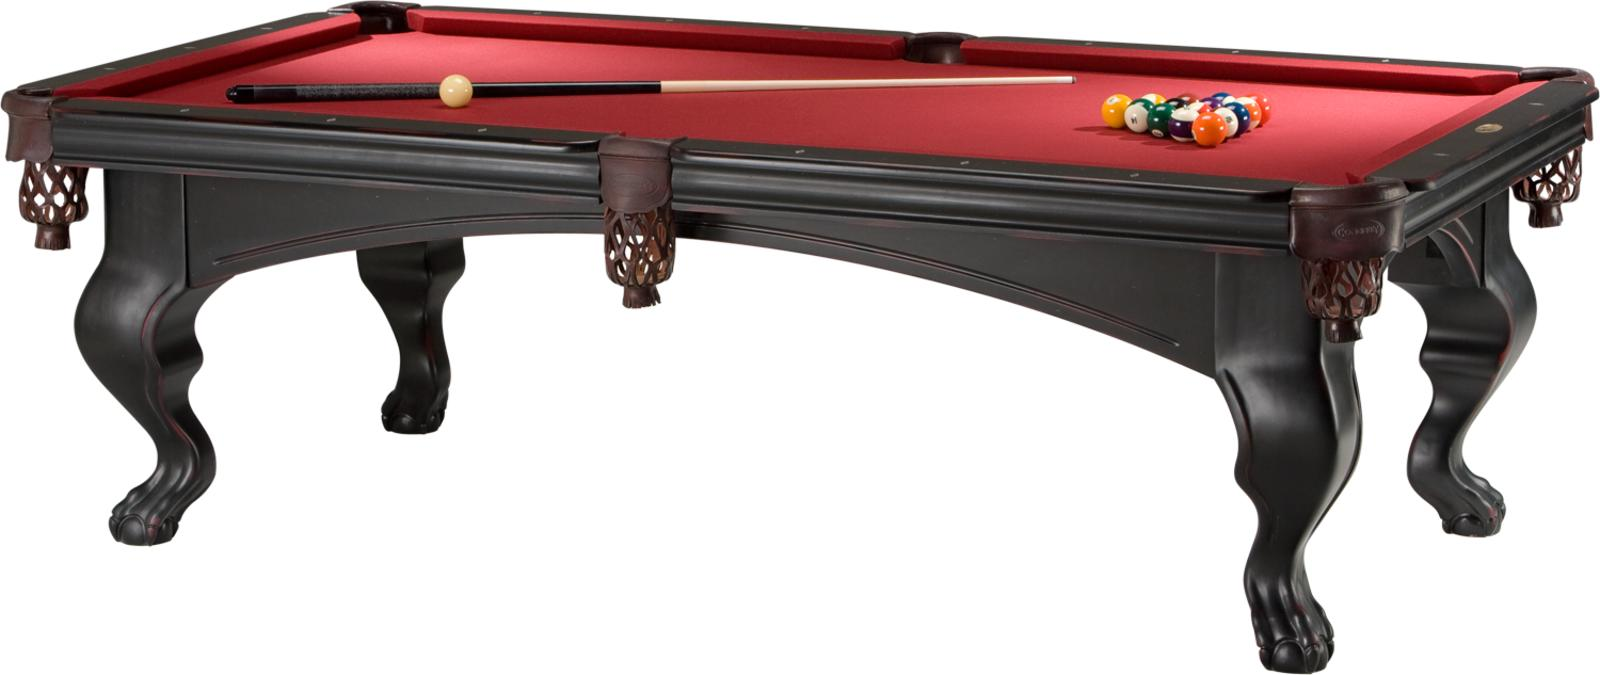 San louis austin billiards austin texas 39 premier pool table retailer - Photos of pool tables ...